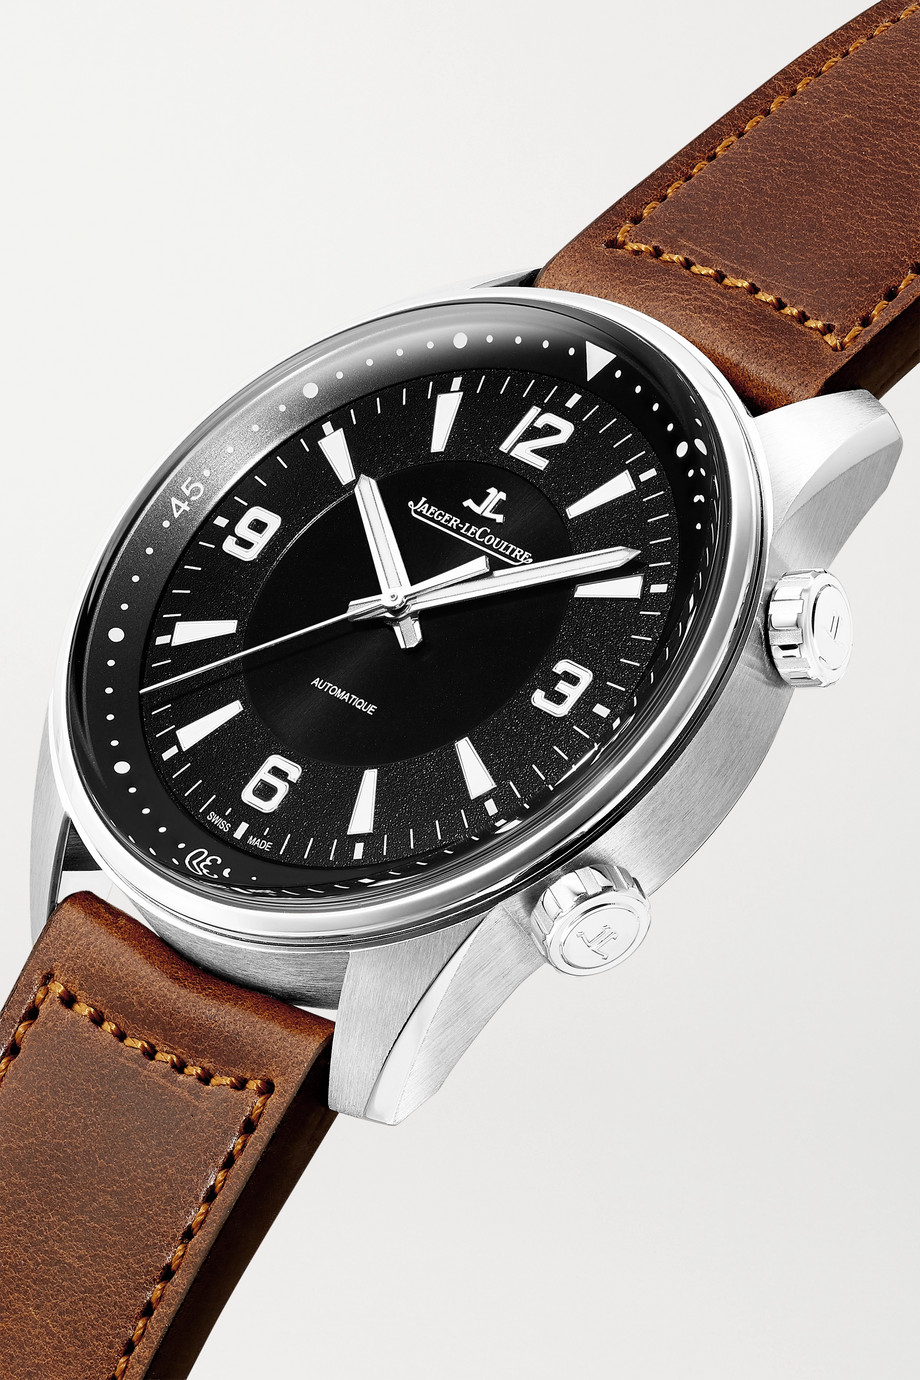 Jaeger-LeCoultre Polaris Automatic 41mm stainless steel and leather watch